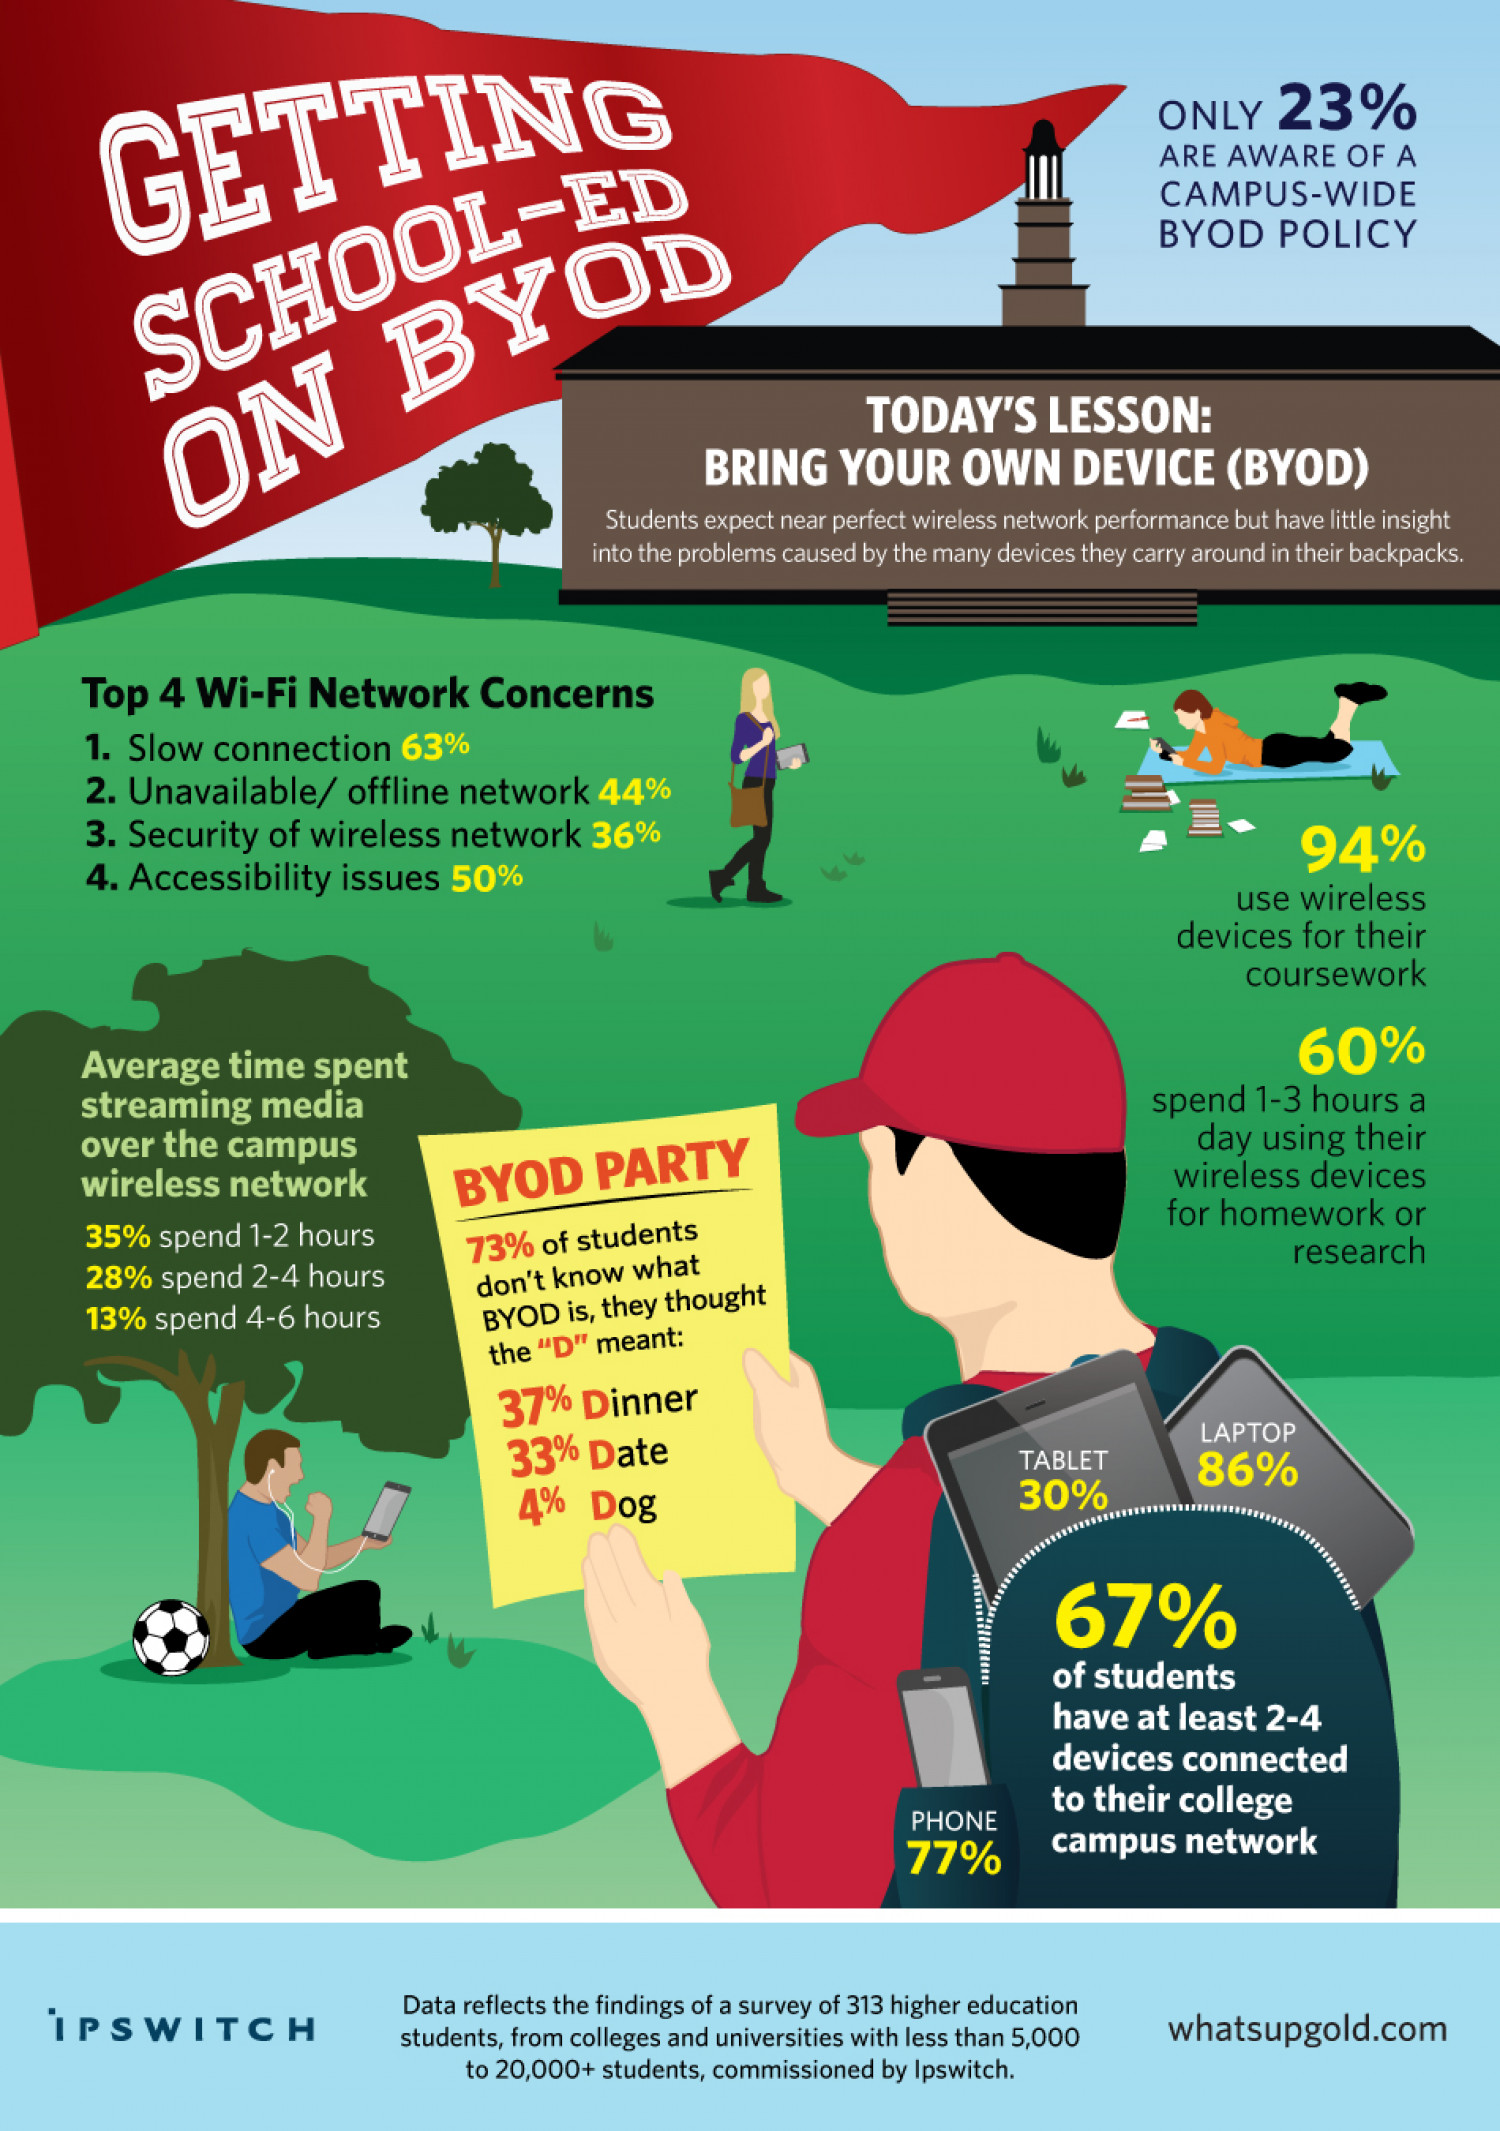 Getting School-Ed on BYOD Infographic